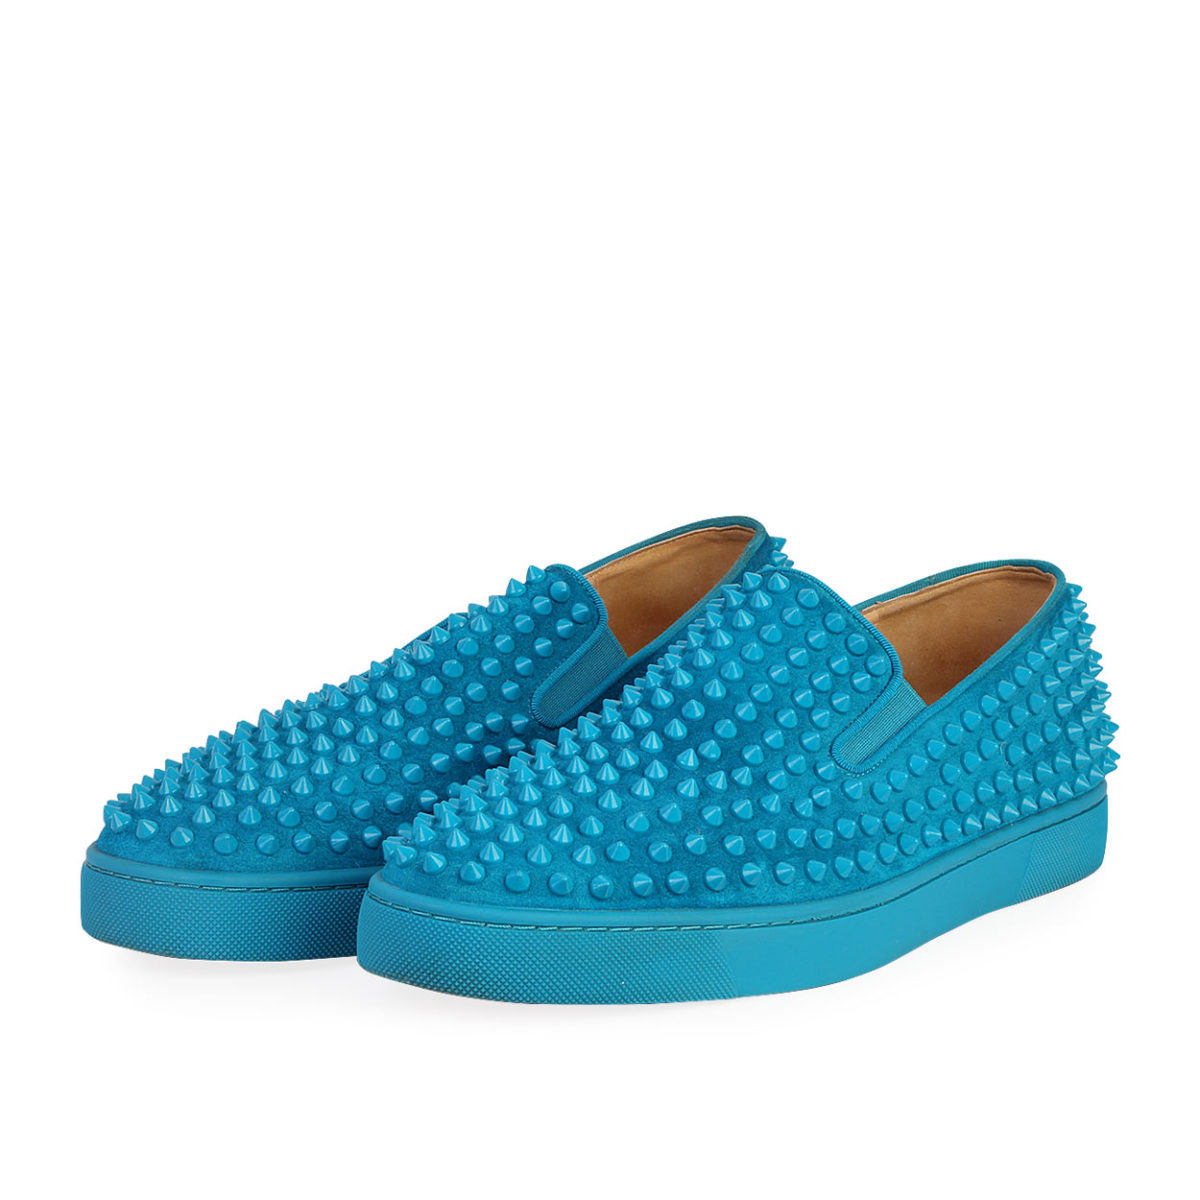 san francisco 81539 27a53 CHRISTIAN LOUBOUTIN Velours Roller Boat Veau Spikes Sneakers Egyptian Blue  - S: 43.5 (9)